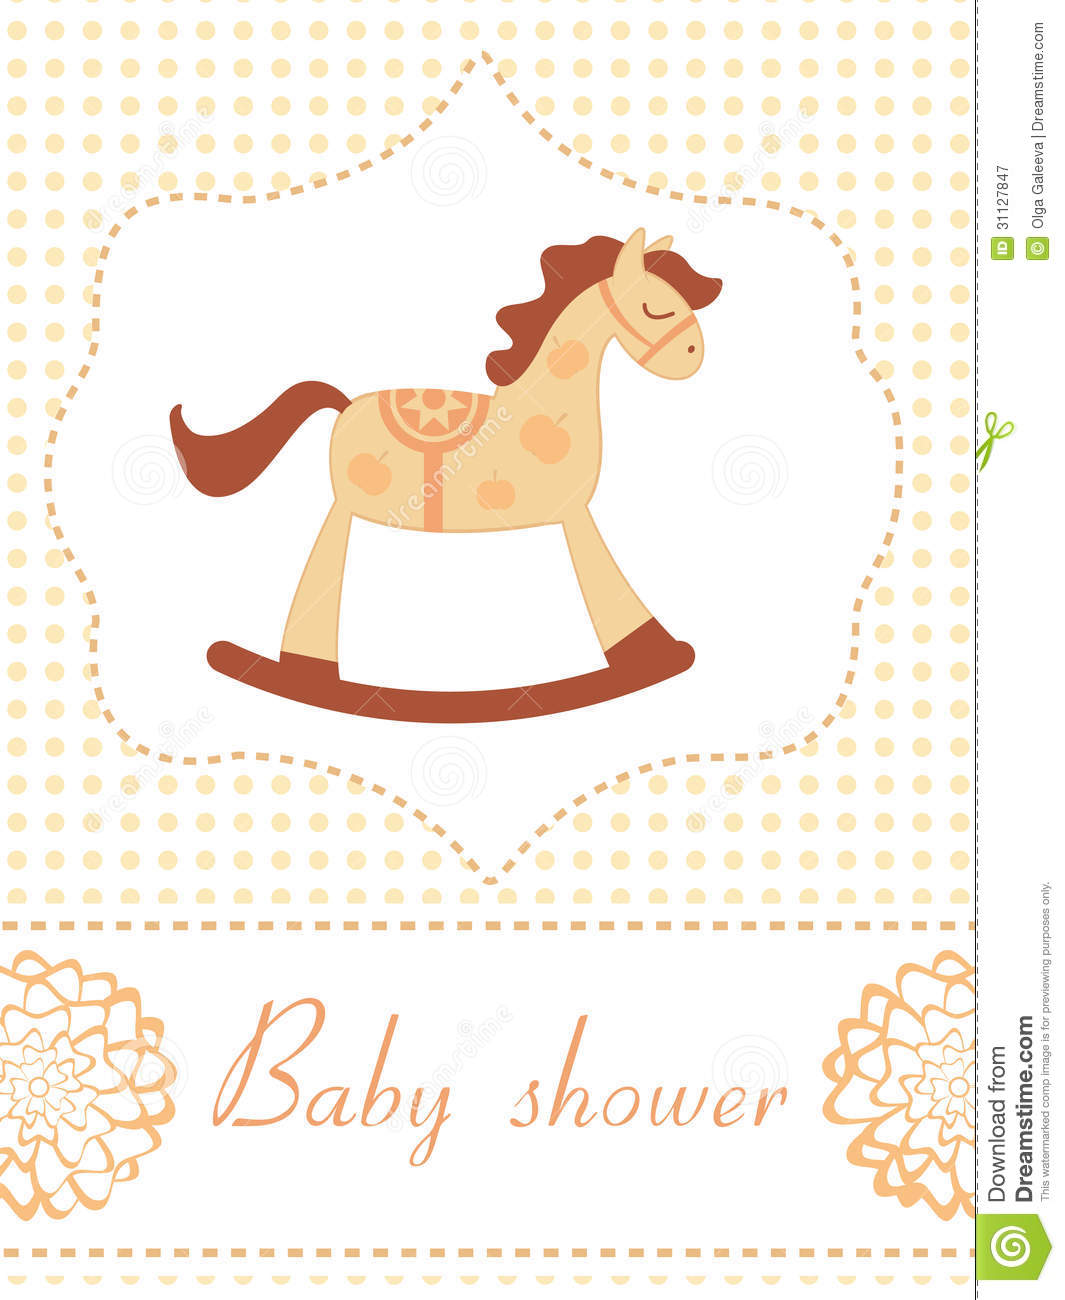 Rocking Horse Baby Shower Card Royalty Free Stock Photography - Image ...